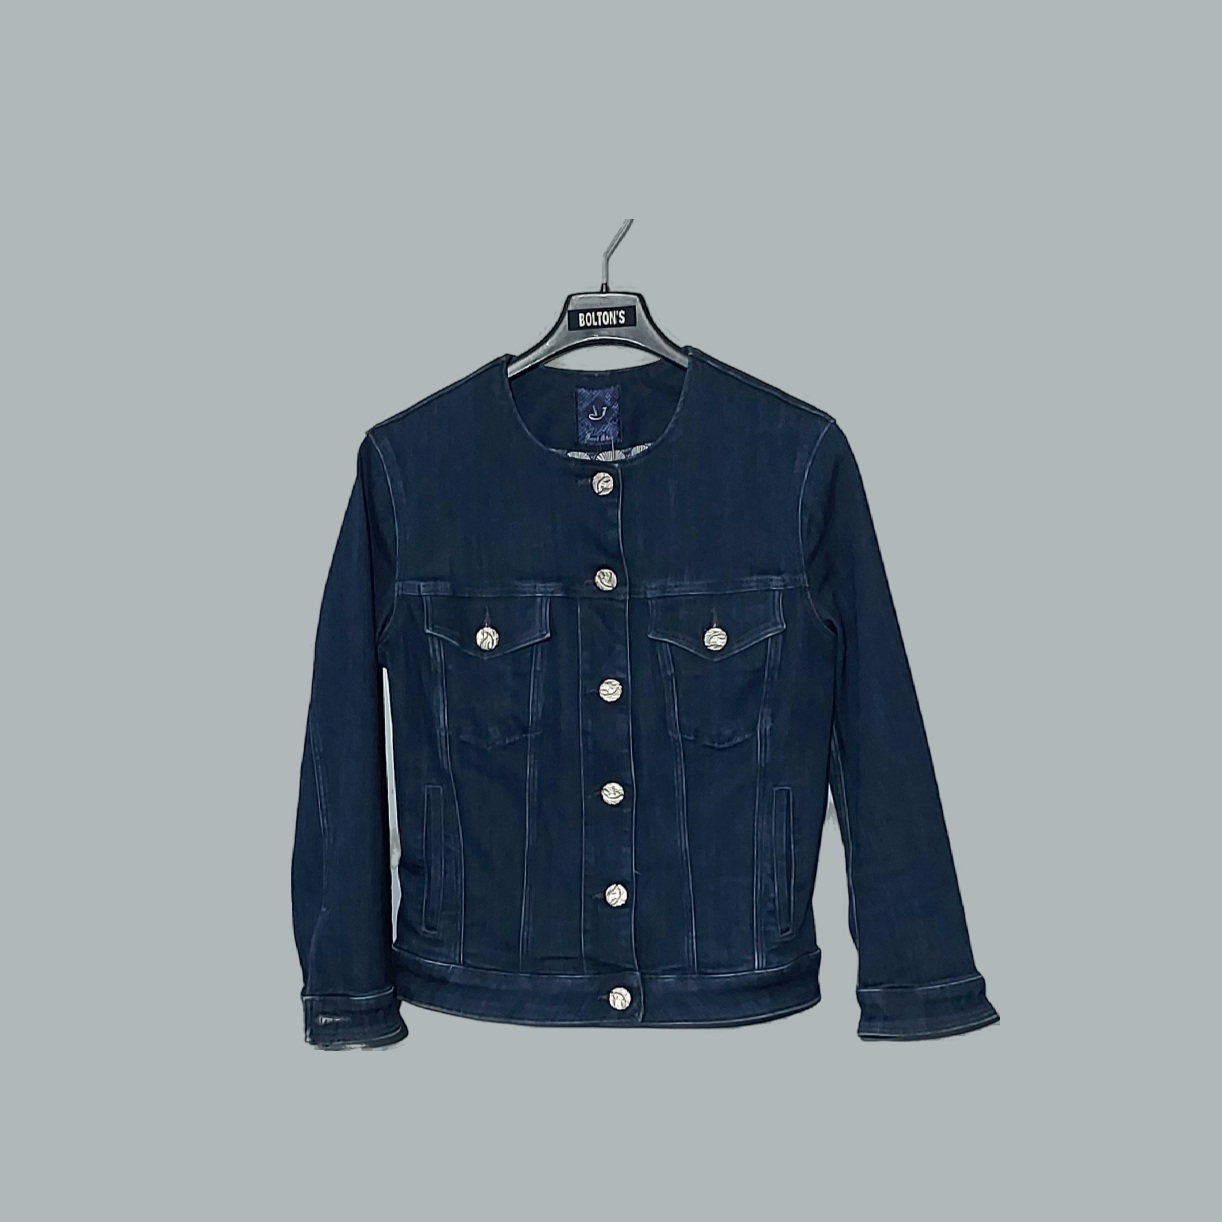 JACOB COHEN GIACCA JEANS TG S